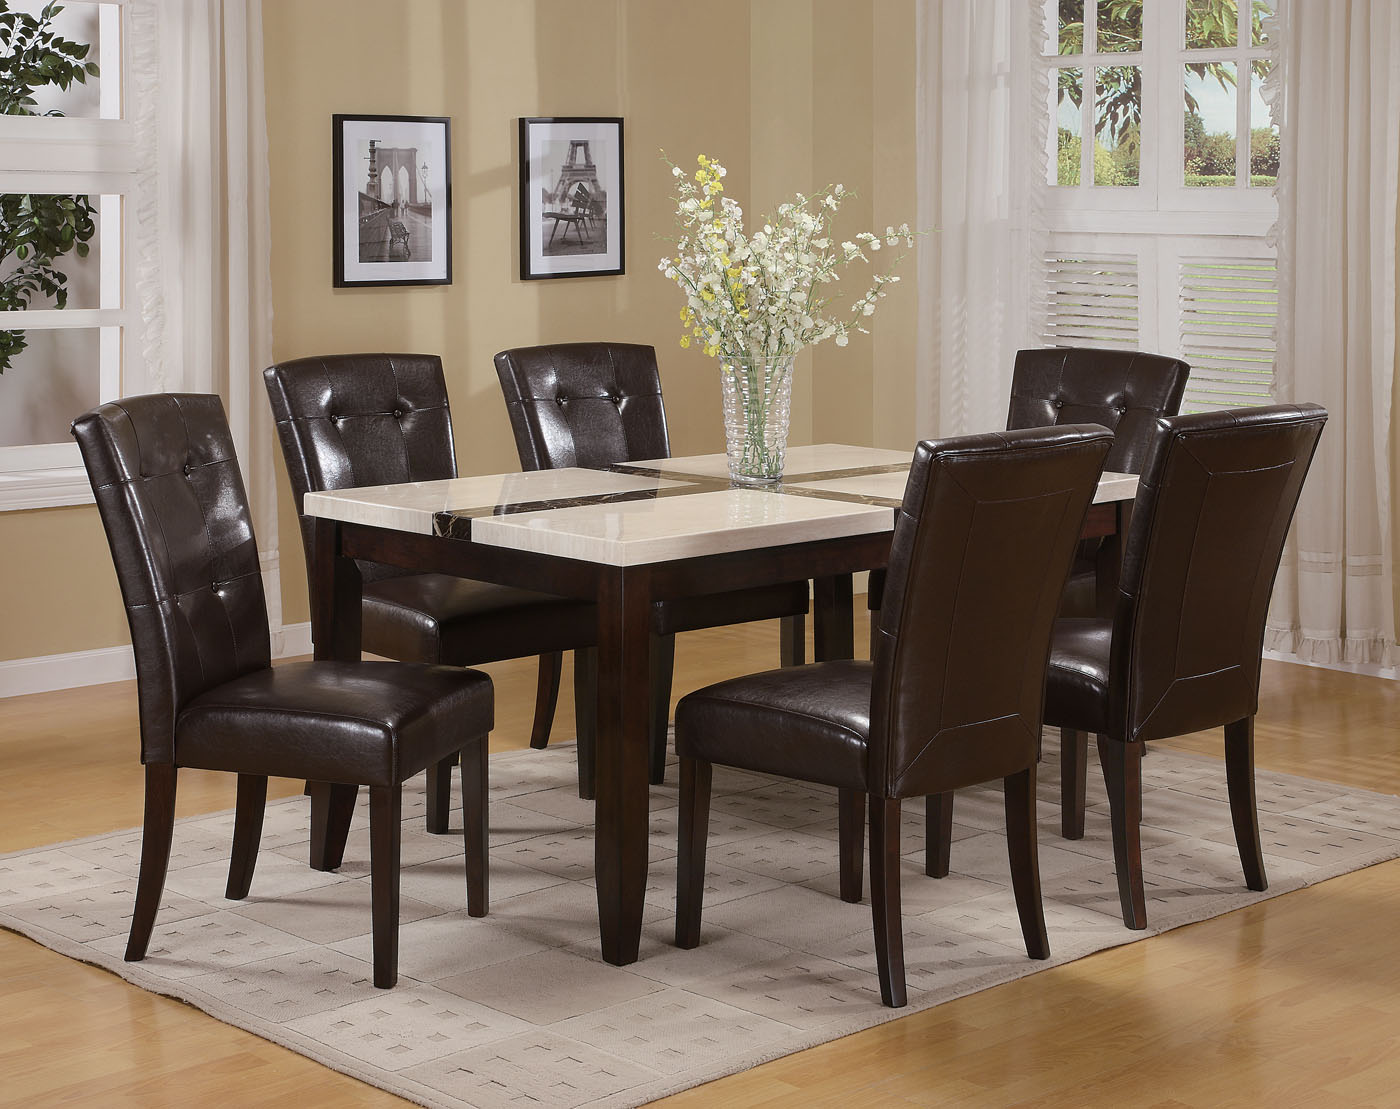 acme justin white faux marble top dining table set in espresso marble top kitchen table Acme Justin White Faux Marble Top Dining Table Set in Espresso by Dining Rooms Outlet